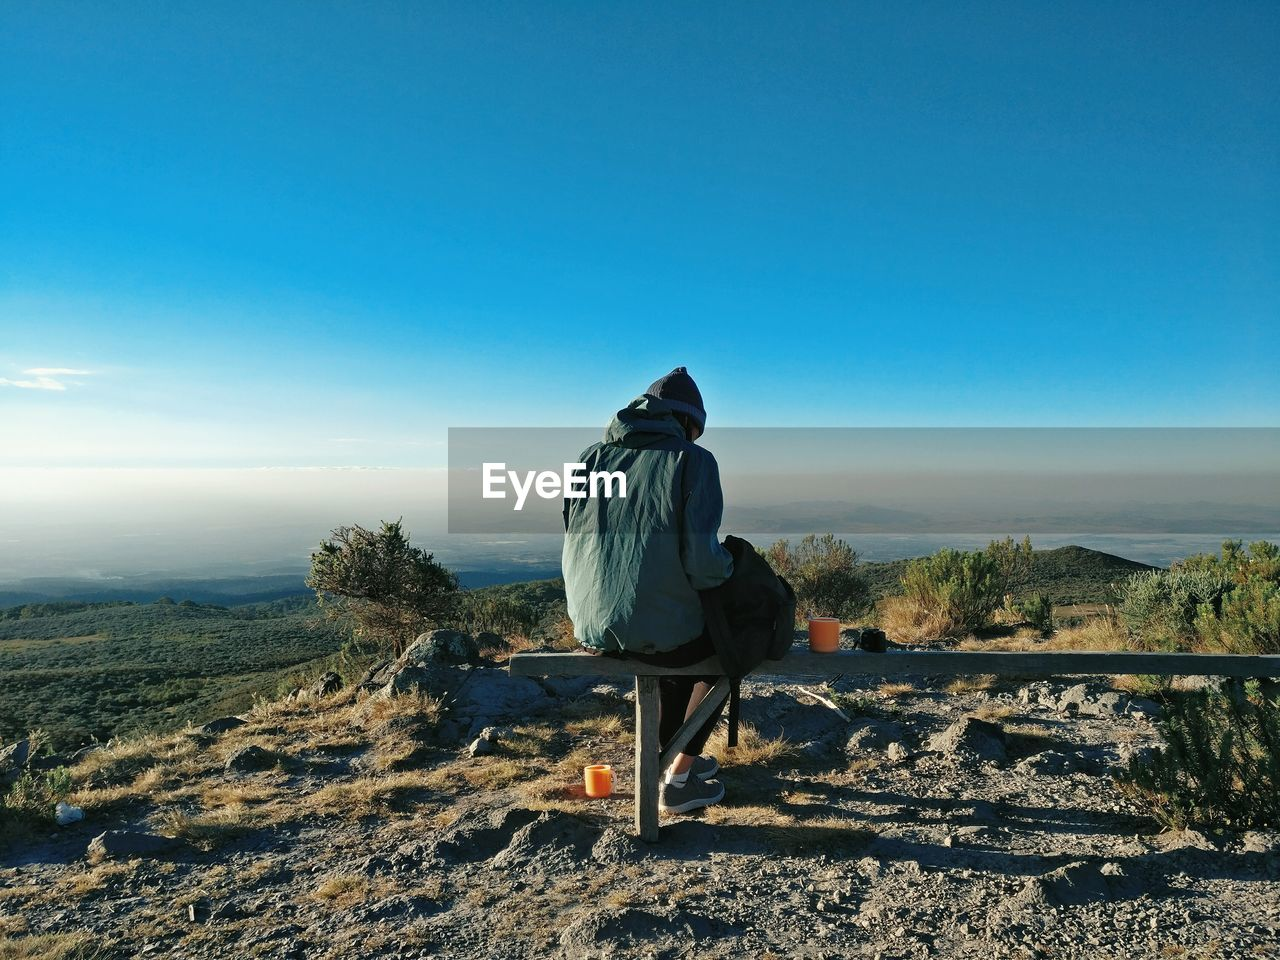 sky, rear view, real people, one person, nature, full length, men, leisure activity, scenics - nature, lifestyles, copy space, tranquility, day, casual clothing, sitting, mountain, tranquil scene, landscape, environment, looking at view, outdoors, warm clothing